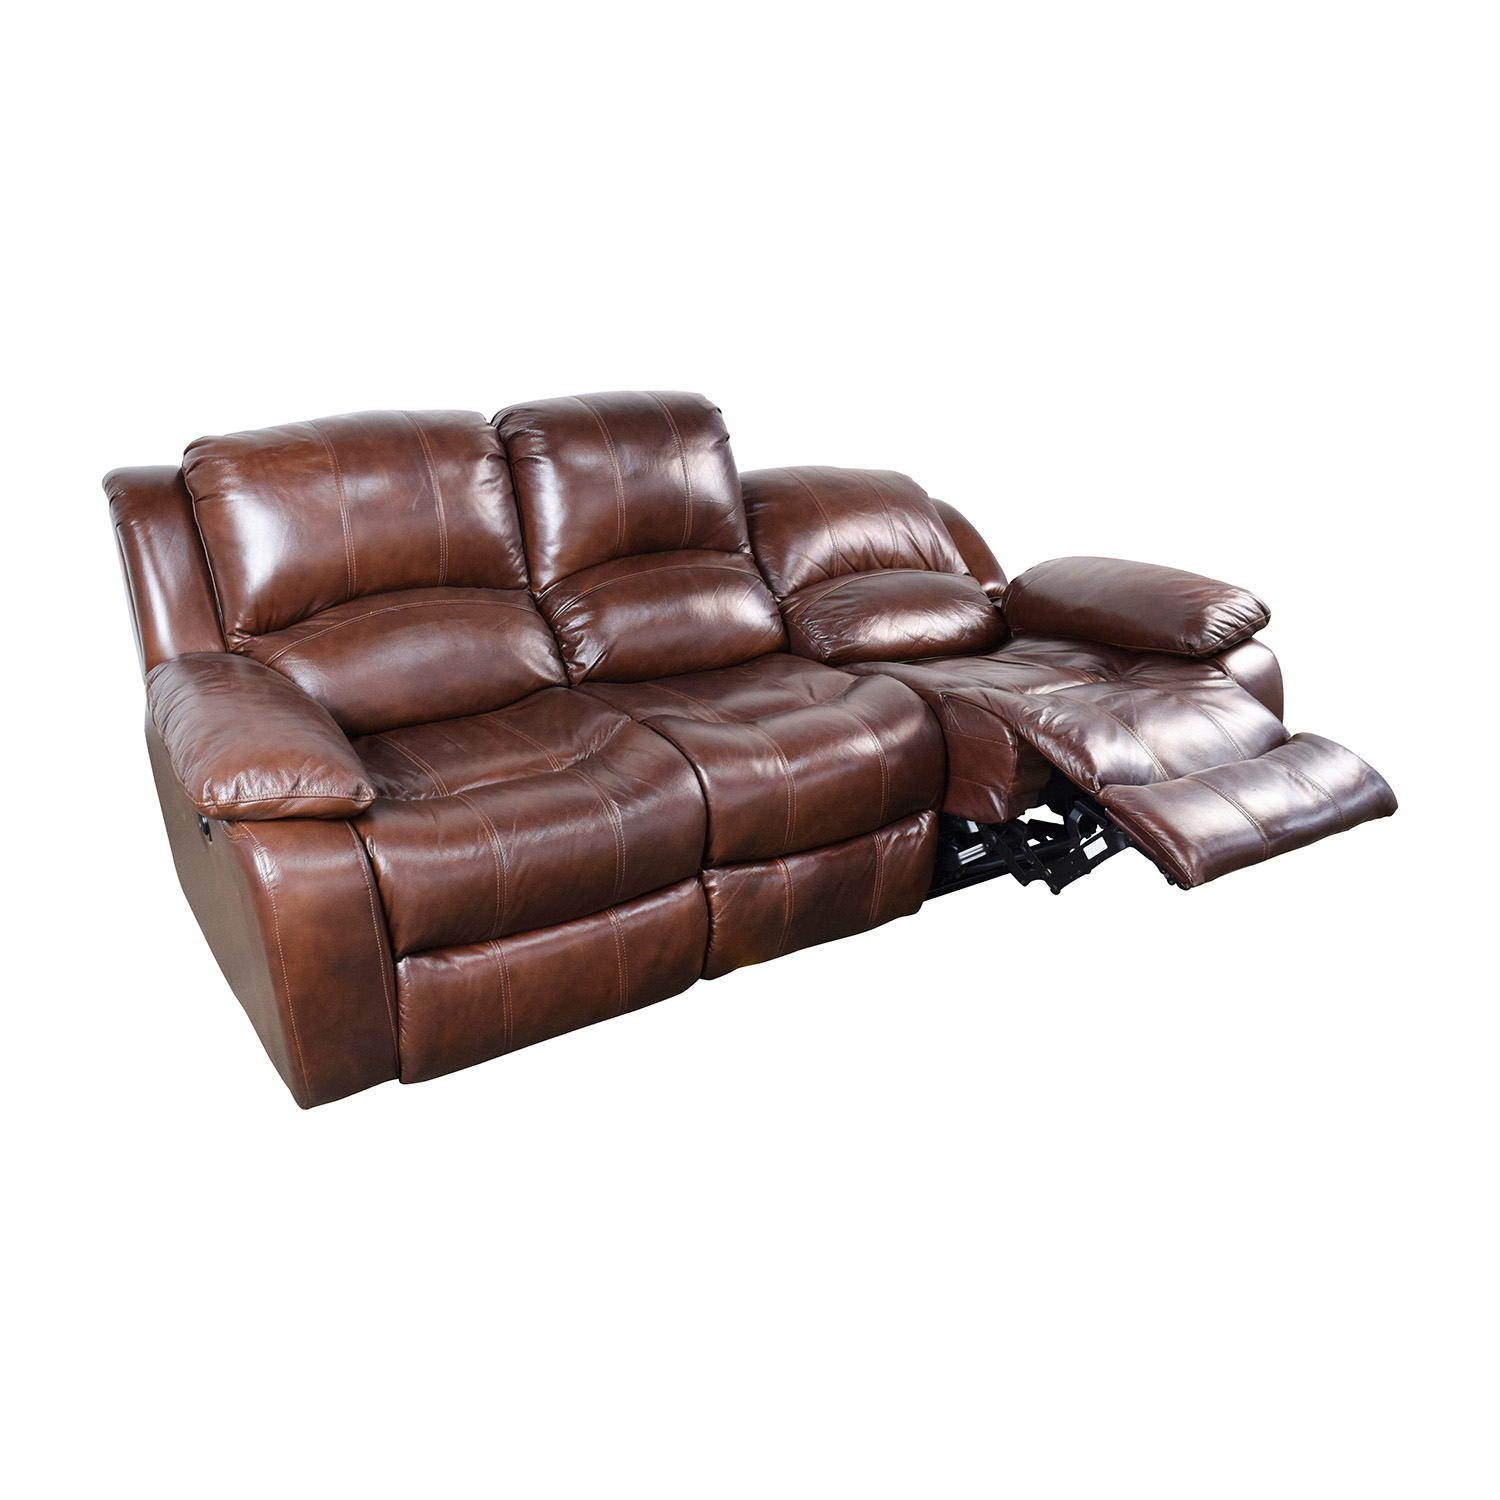 51 off raymour and flanigan raymour flanigan bryant for Leather reclining sofa